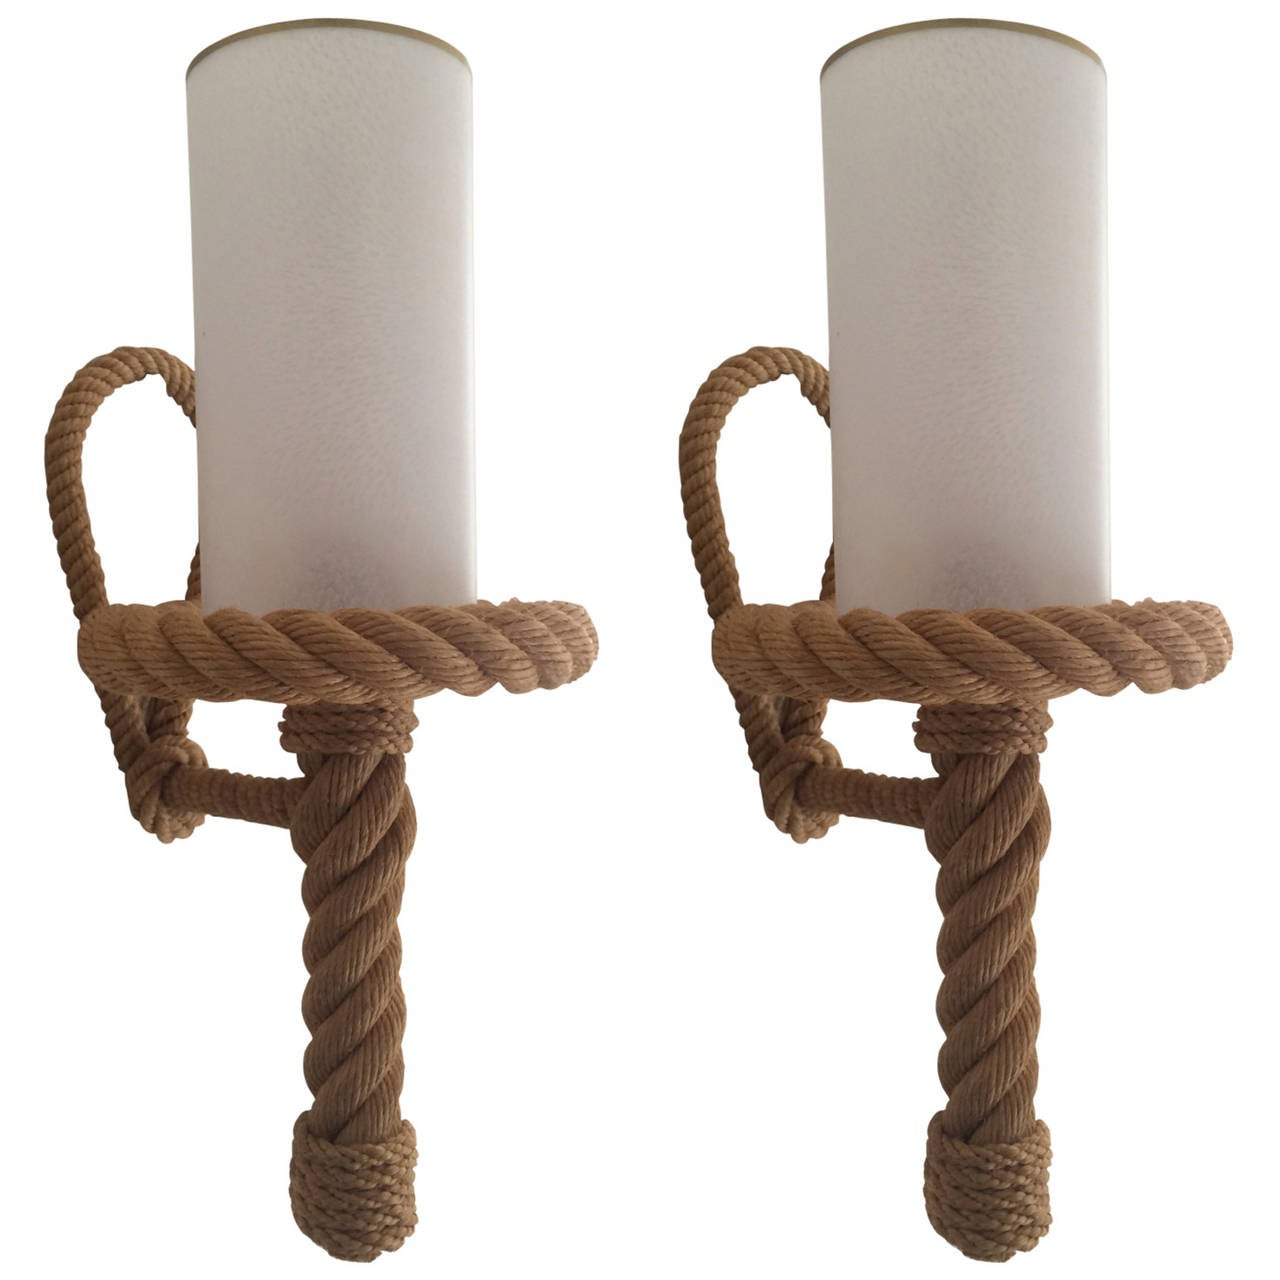 Wall Lights With Rope : Audoux-Minet Riviera Pair of Rope Sconces in Vintage Condition at 1stdibs